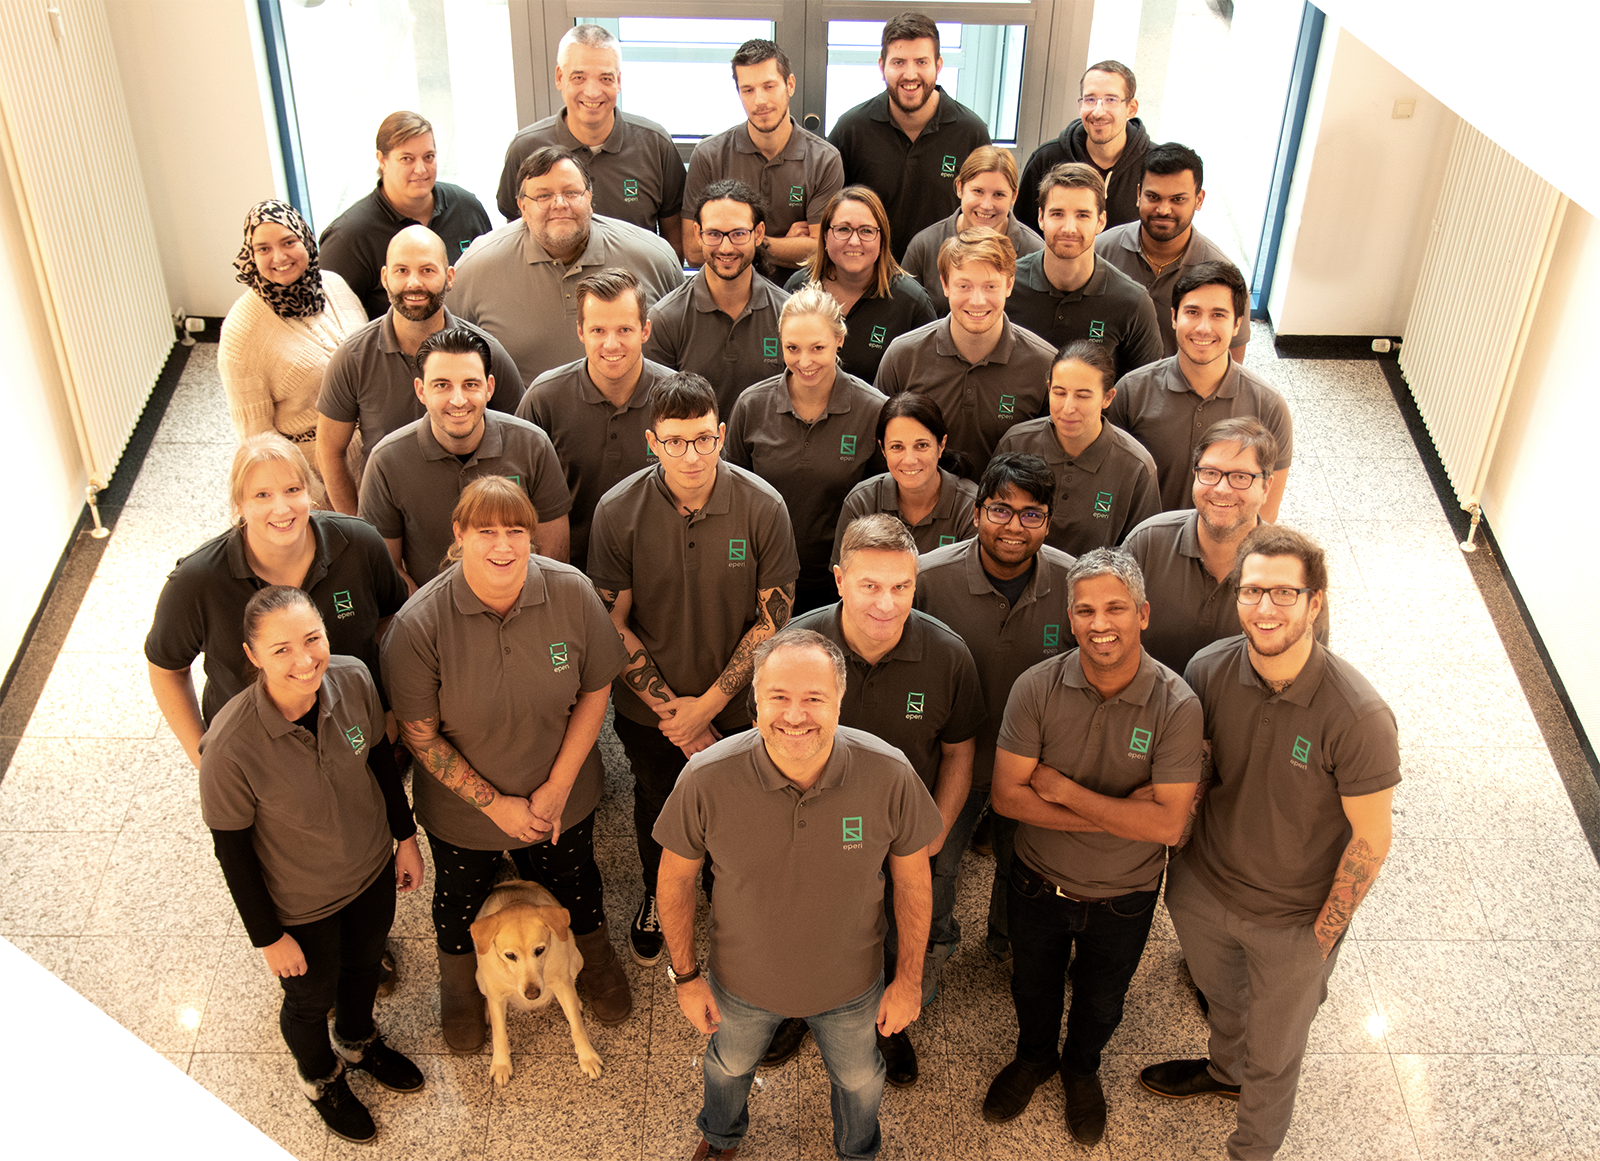 Group photo of employees and CEO